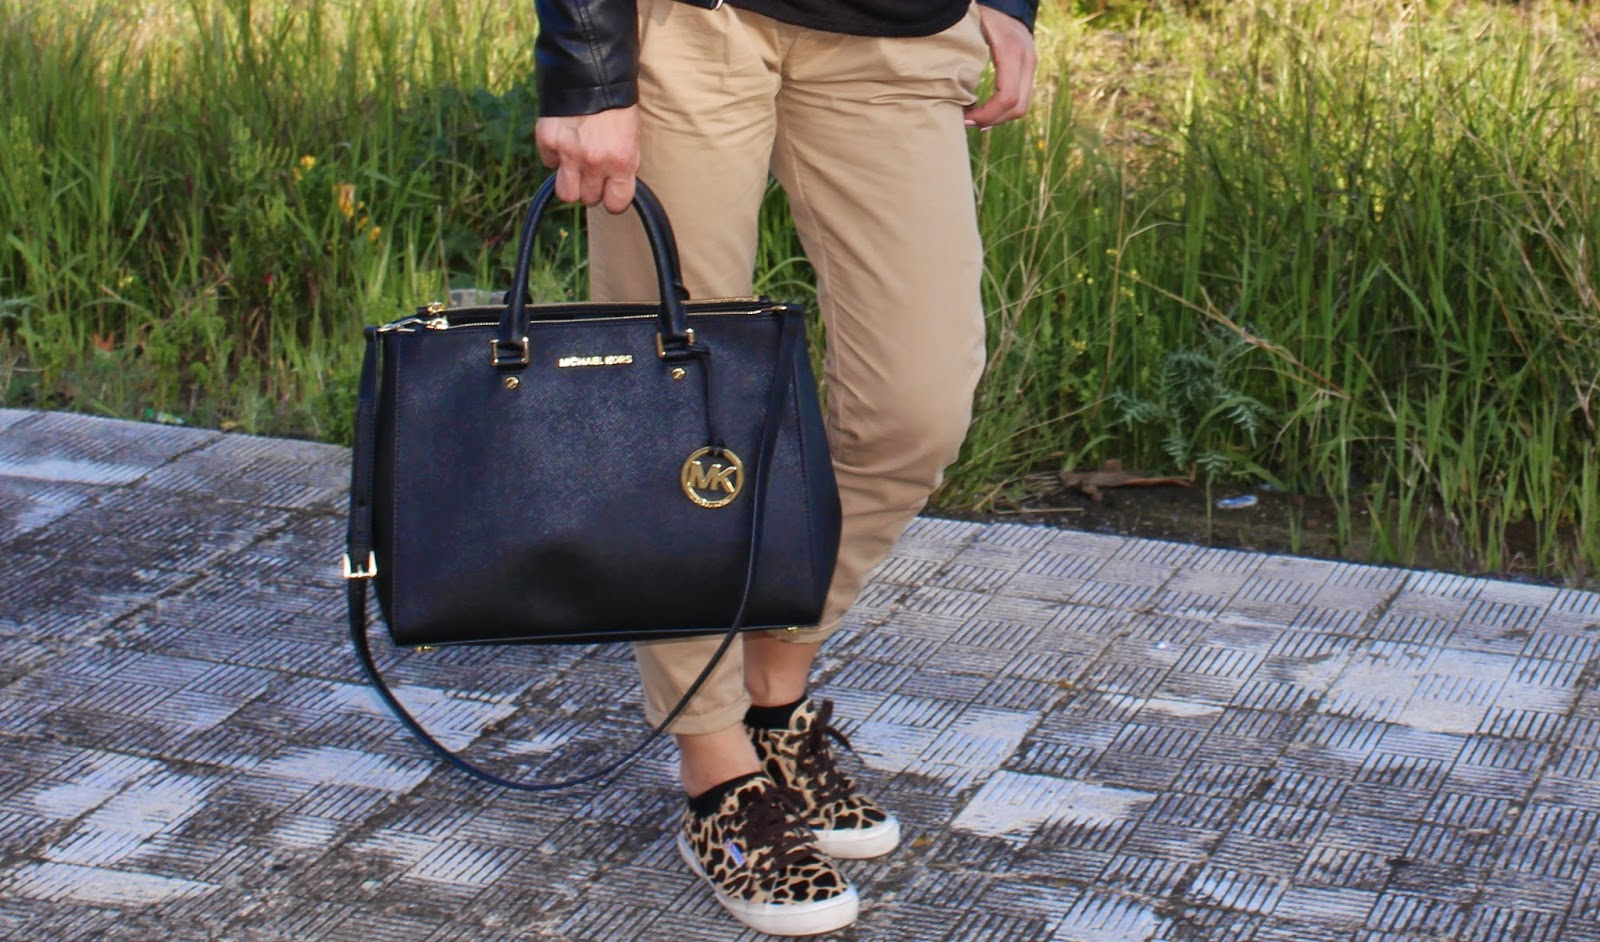 Stylegram, borsa michael kors, superga maculate